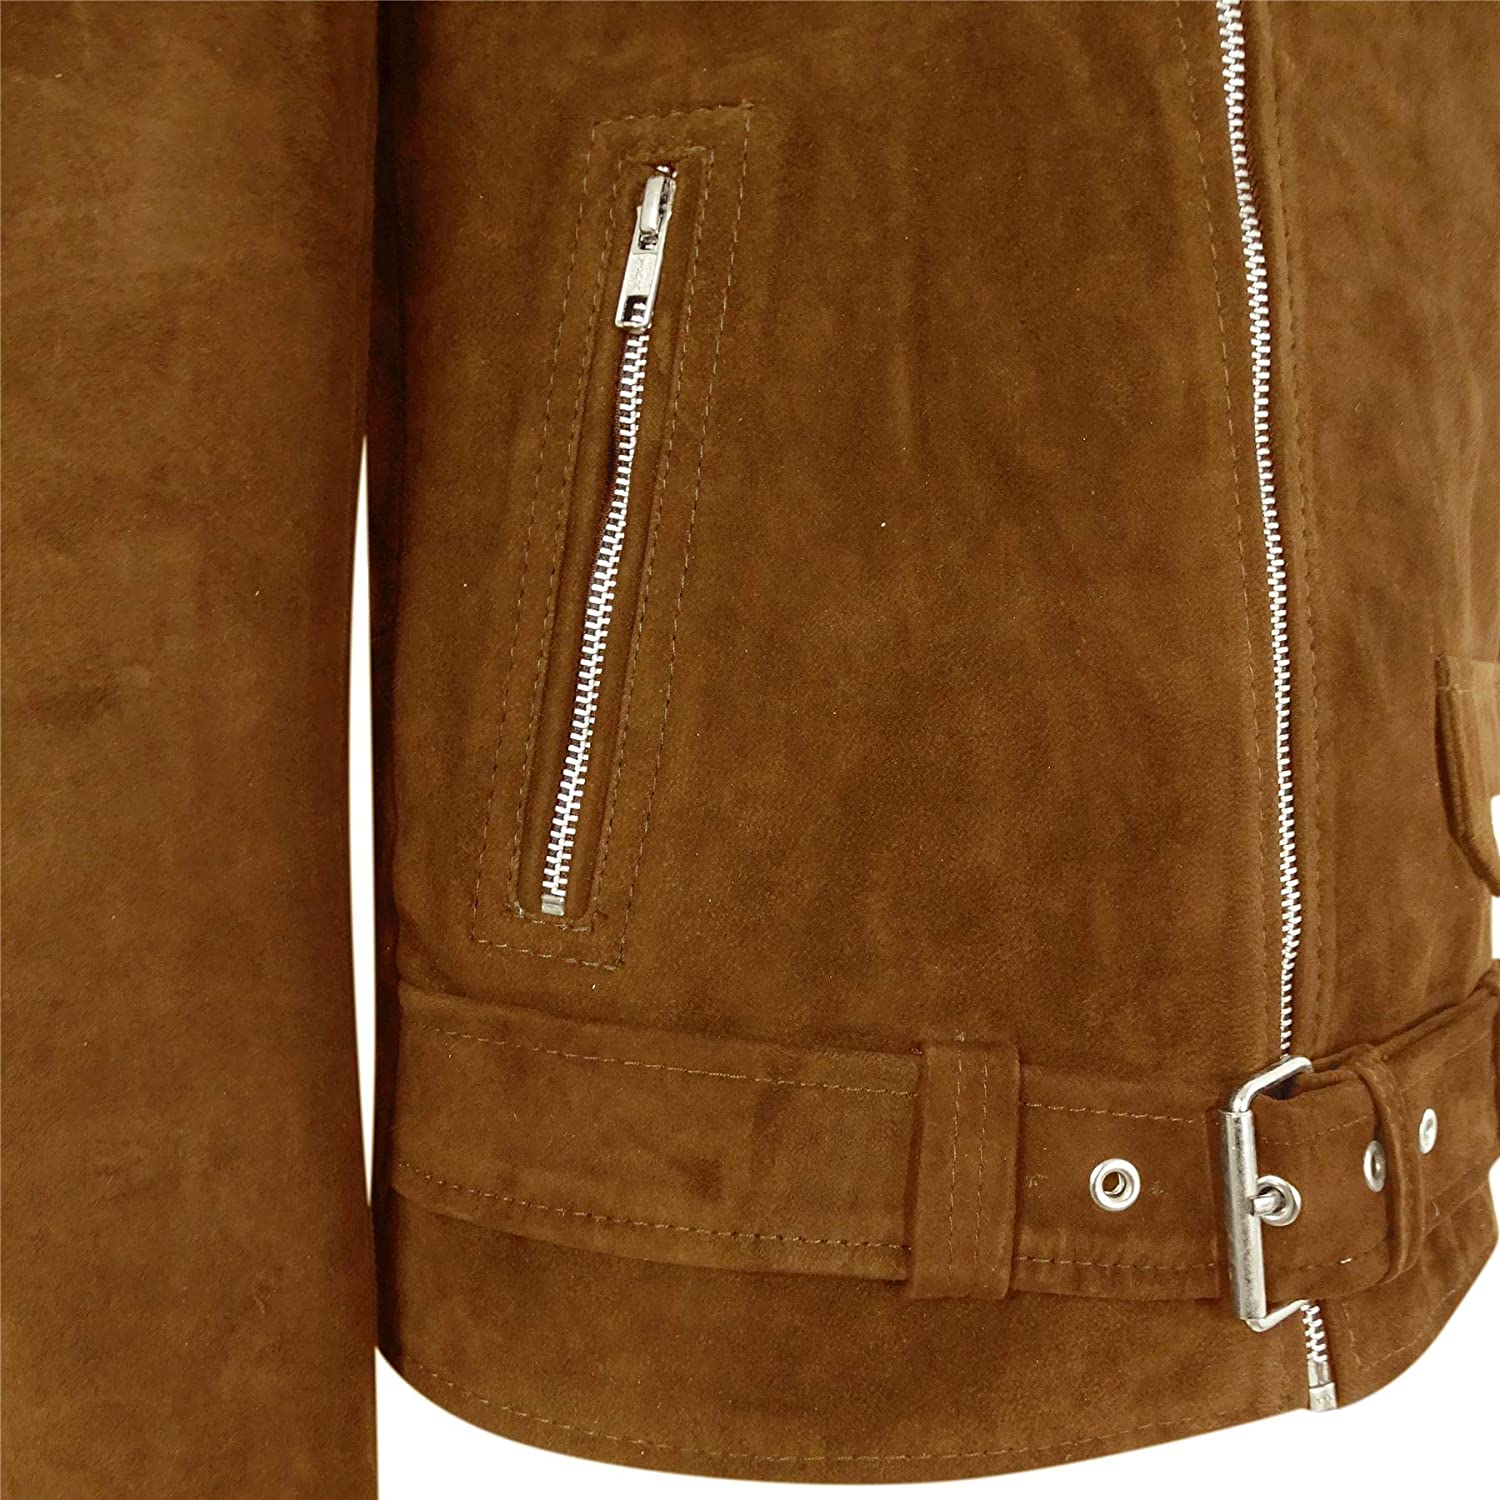 TruClothing Mens Slim Fit Cross Zip Vintage Brando Washed Real SuedeJacket Brown Tan Camel